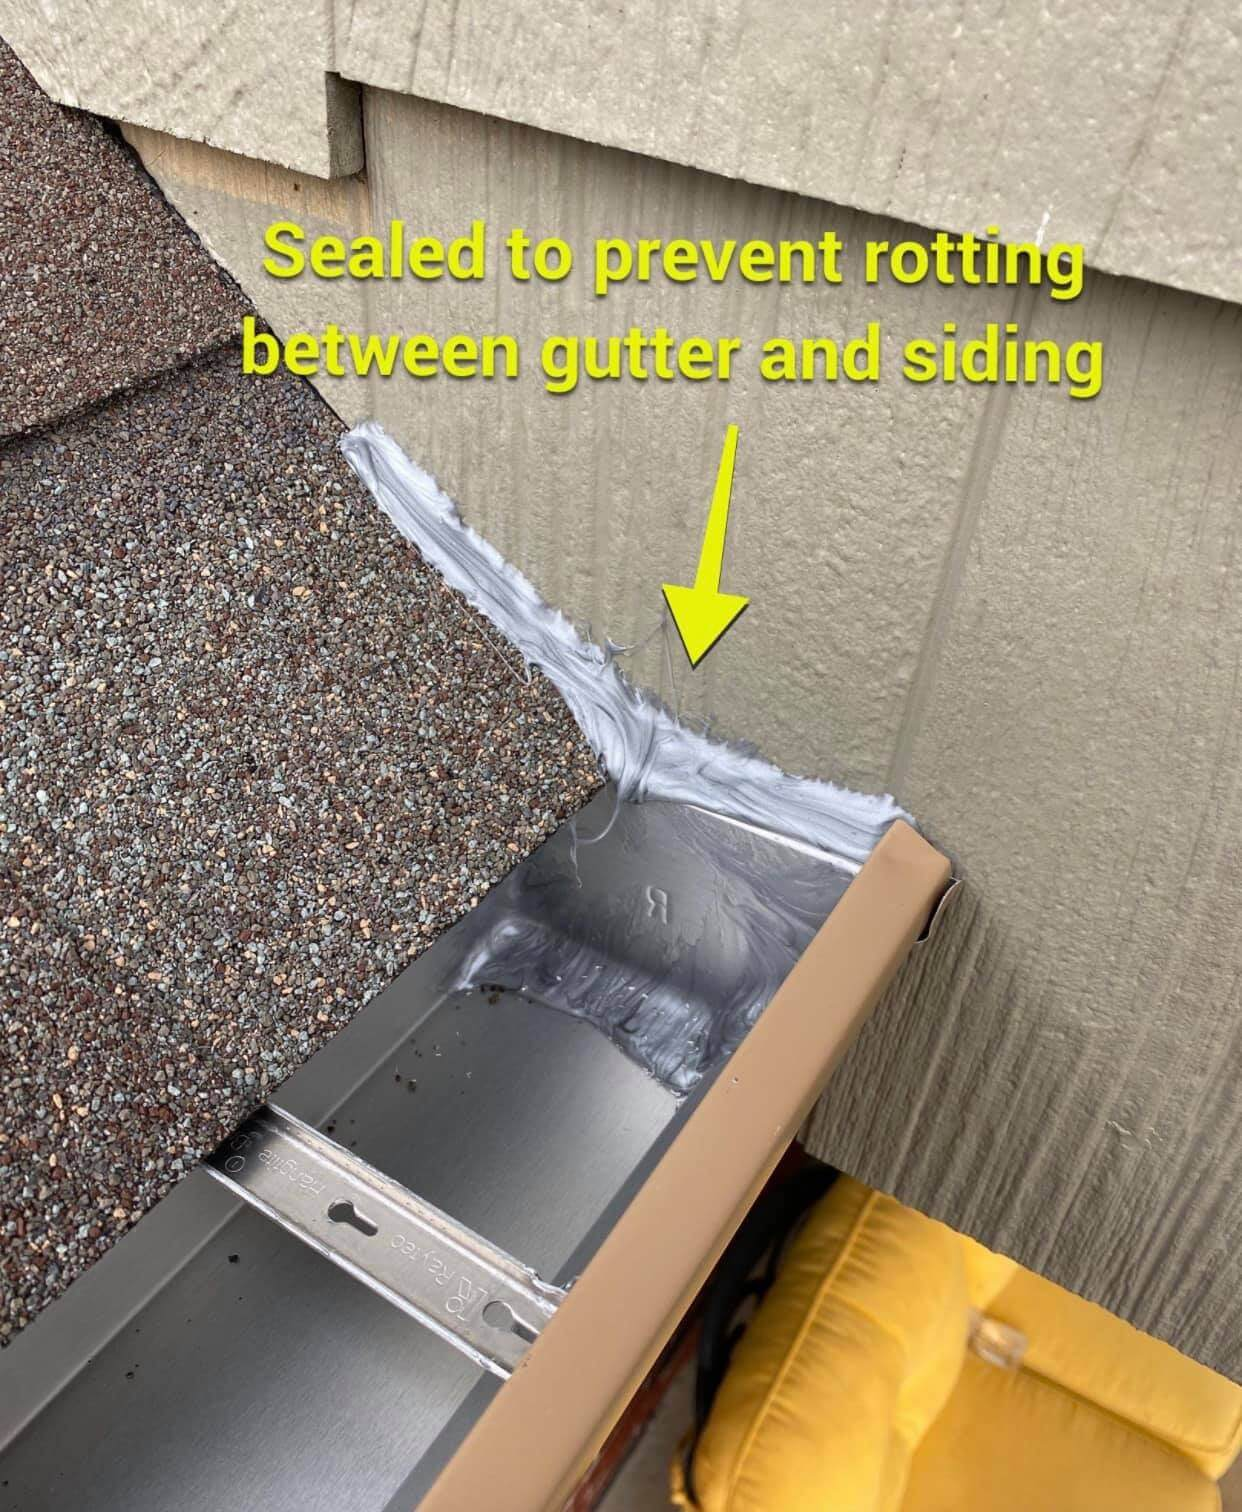 gutter sealant, showing how to prevent the siding on your home from rotting